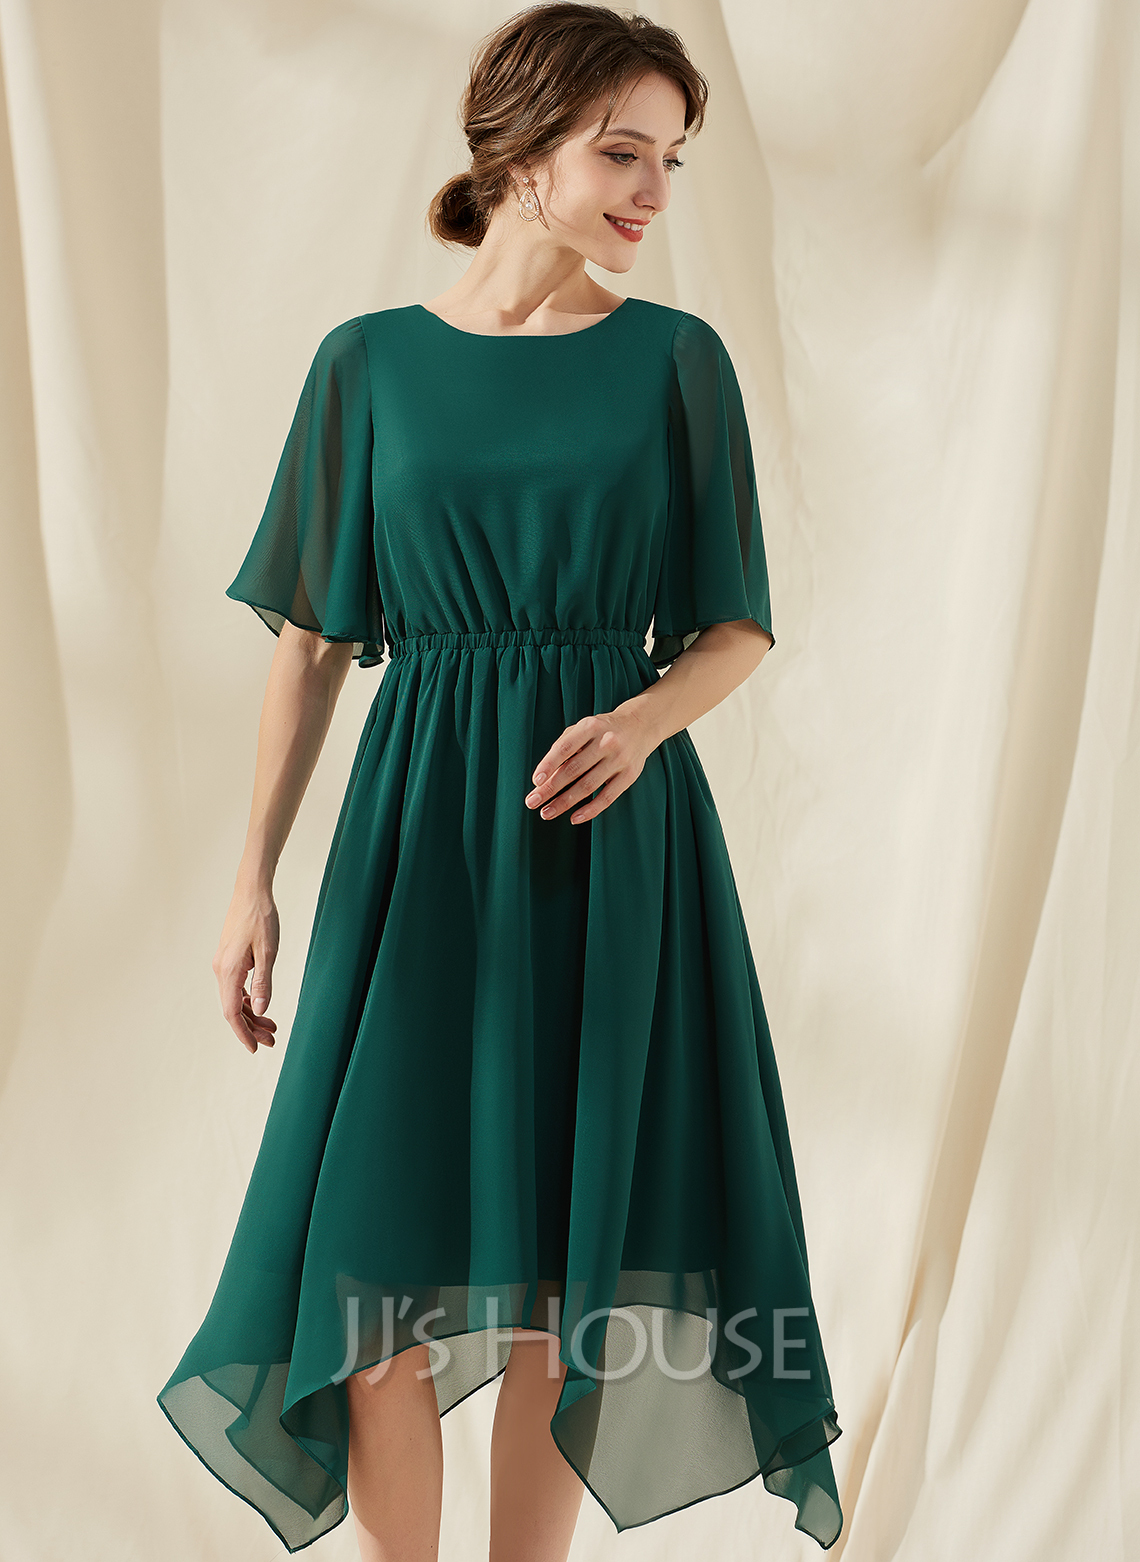 A-Line Scoop Neck Tea-Length Chiffon Cocktail Dress With Ruffle